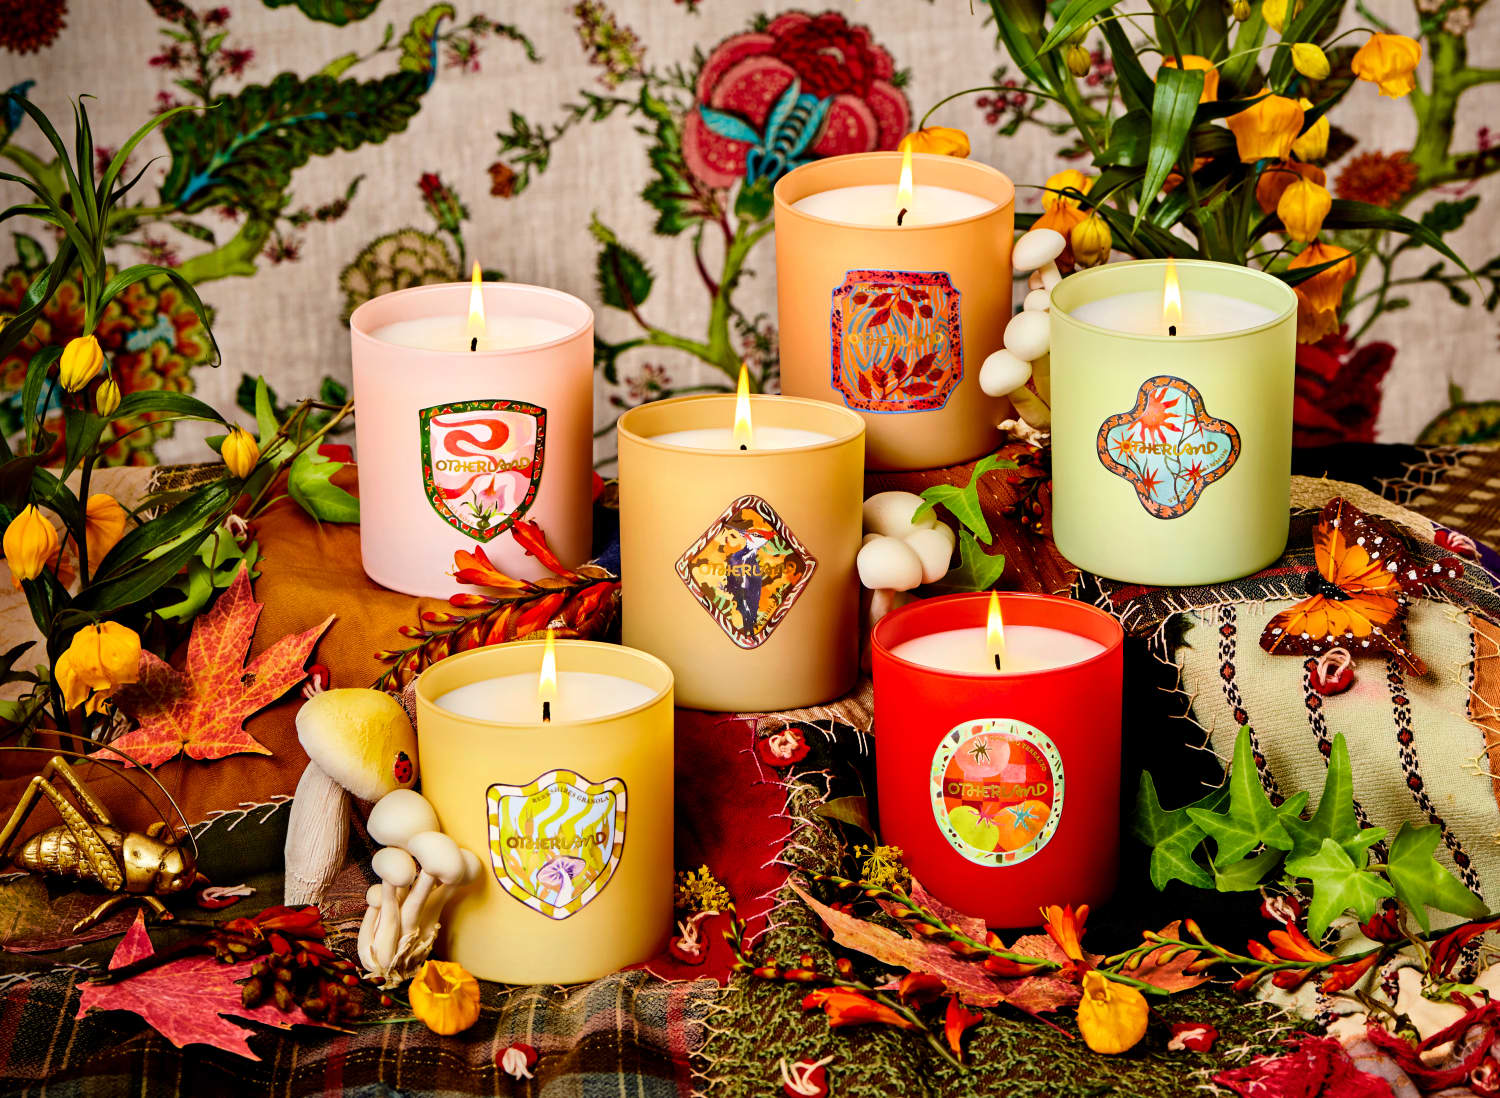 One of Our Favorite Candle Brands Launched a Delicious Fall Collection That Non-Pumpkin Spice Fans Will Love